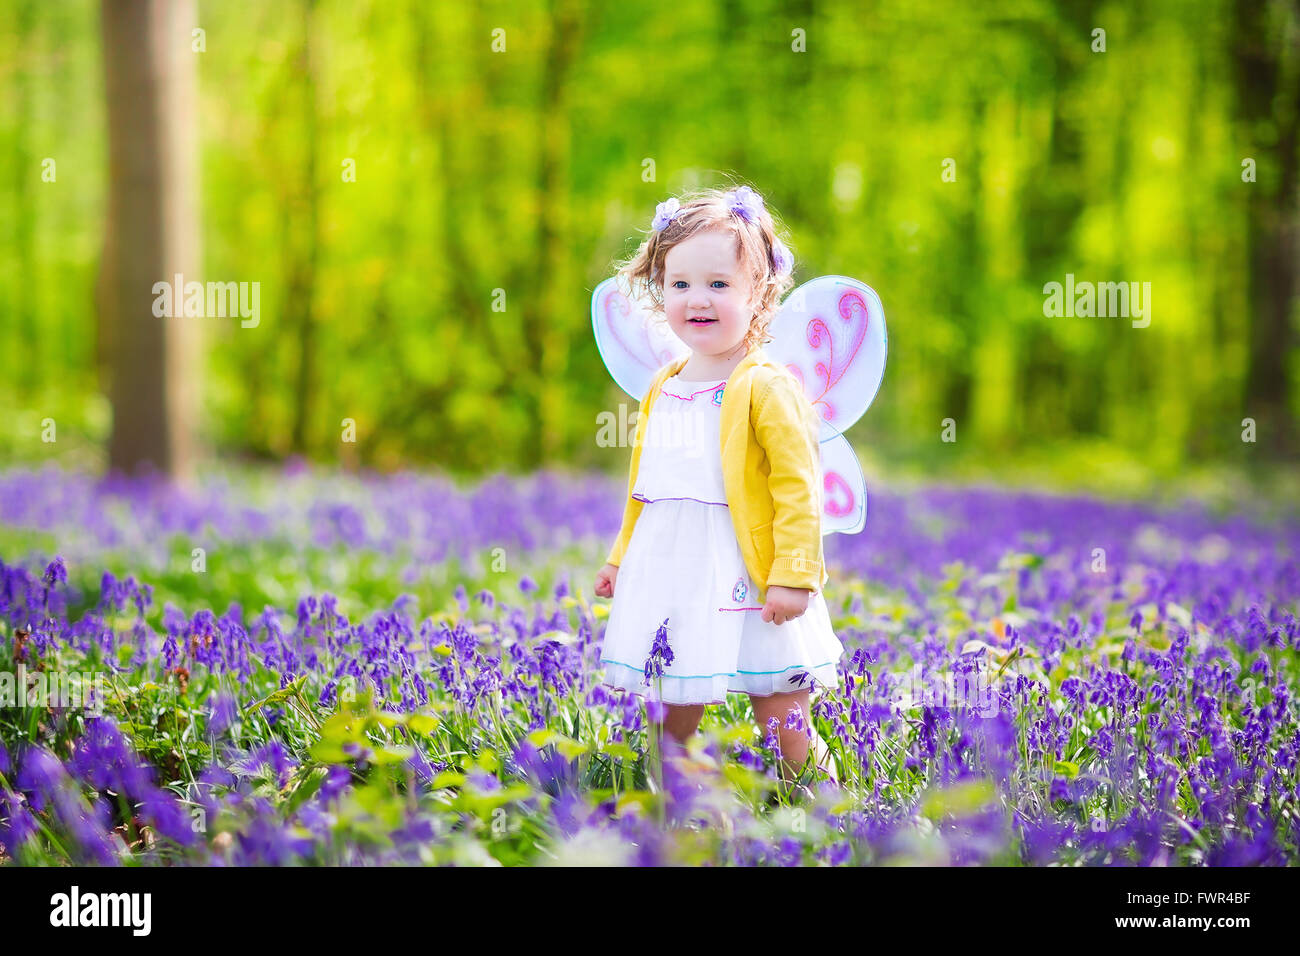 cb191b490 Adorable toddler girl with curly hair wearing a fairy costume with purple  wings and yellow dress is playing in beautiful forest